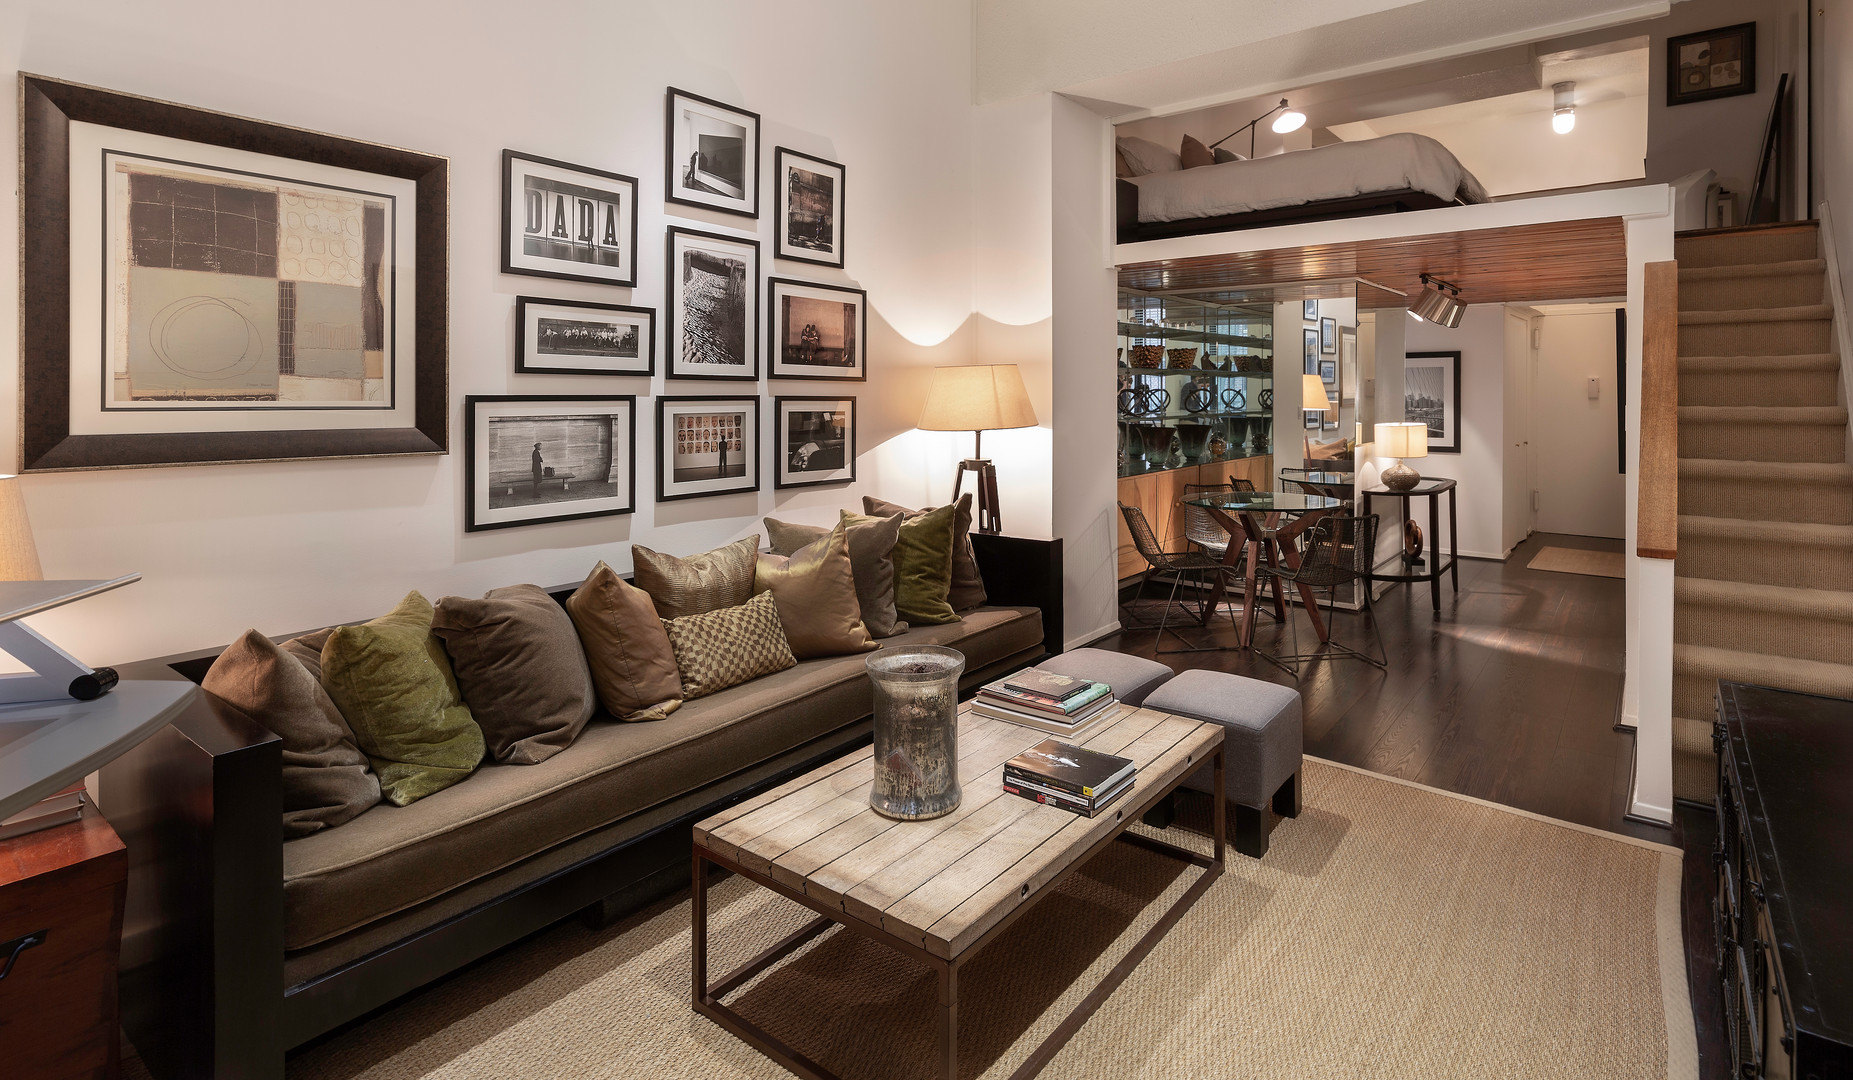 Studio Apartment on East 49th St in Manhattan, NYC